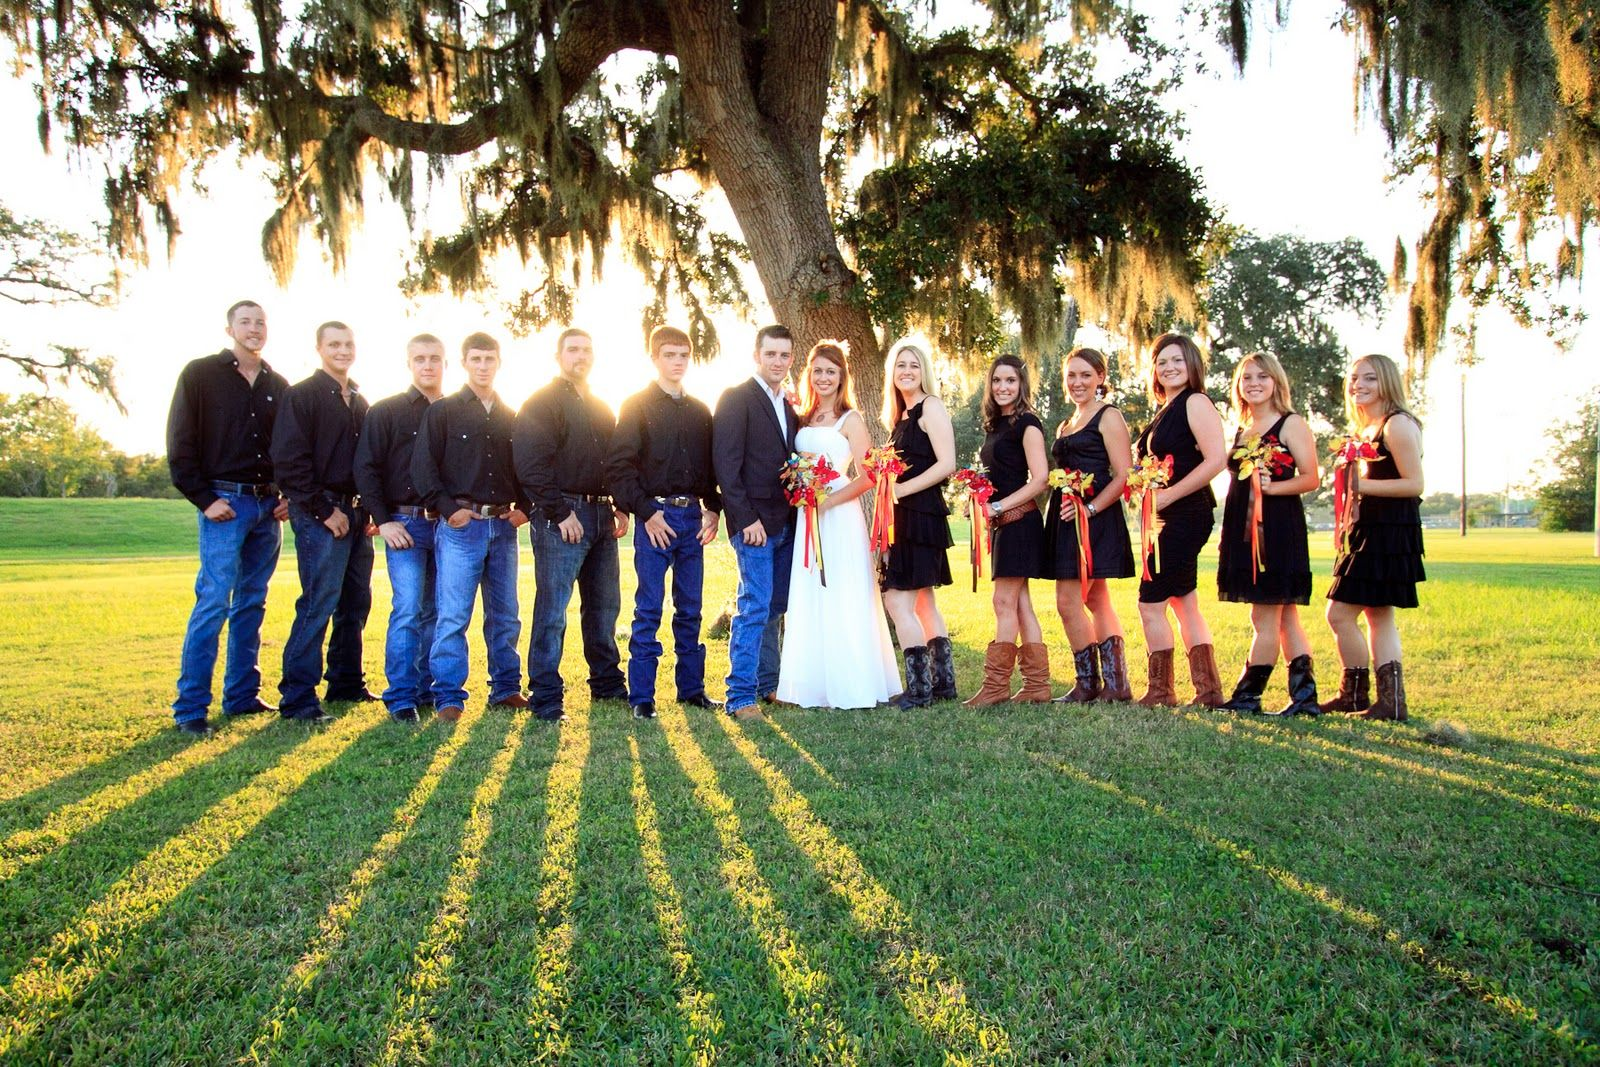 Best 25+ Blue Jean Wedding Ideas On Pinterest  Jeans. Wedding Dresses Sweetheart Neckline Princess Ball Gown. Black Bridesmaid Dresses John Lewis. Vintage Fit And Flare Wedding Dresses. Boho Wedding Gowns Perth. Wedding Dresses With Petticoats. Designer Wedding Dresses Made In China. Lace Long Sleeve Wedding Dresses Sydney. Simple Wedding Dress For 40 Year Old